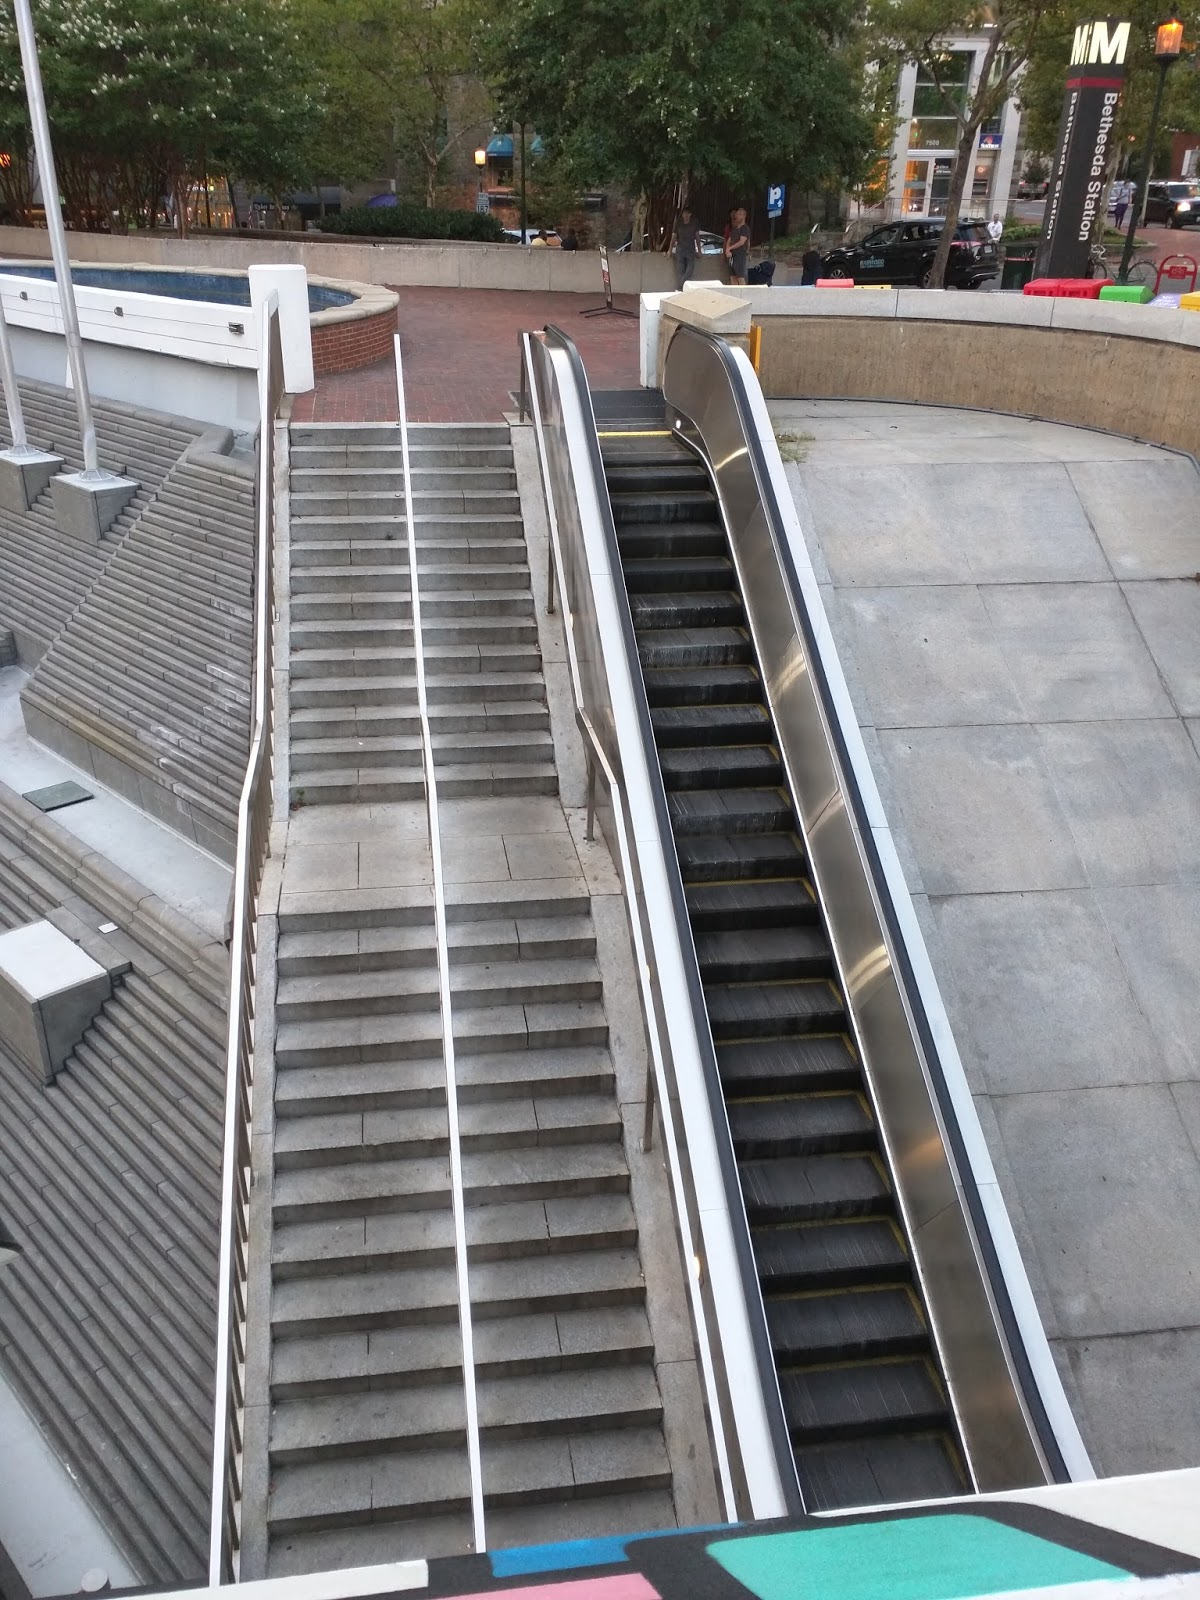 The plaza to bus bays escalator so often out of commission was back offline again during the evening rush hour last night just weeks after being repaired